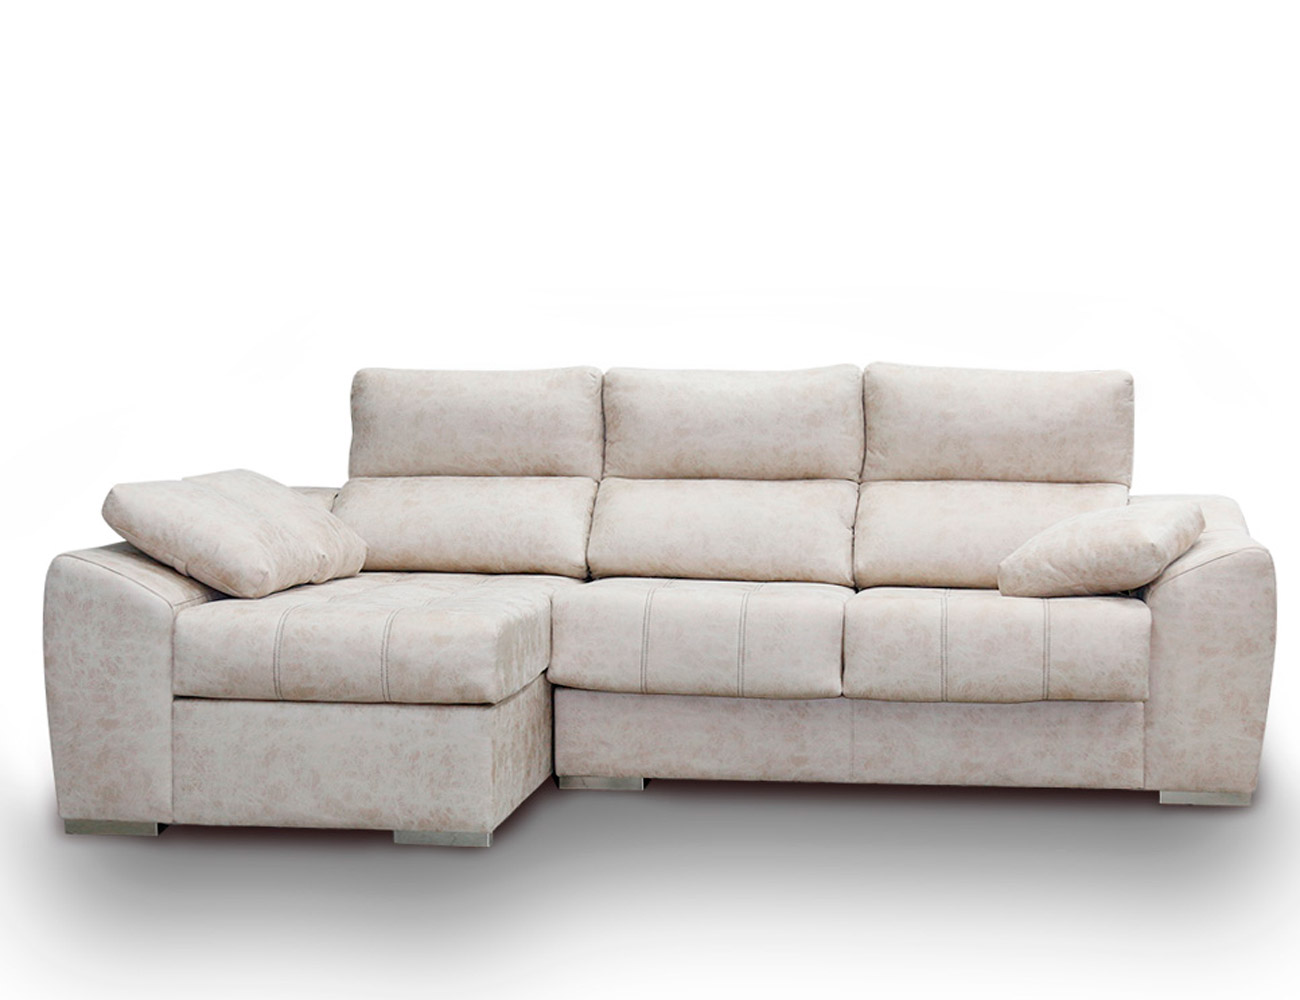 Sofa chaiselongue anti manchas beig blanco4